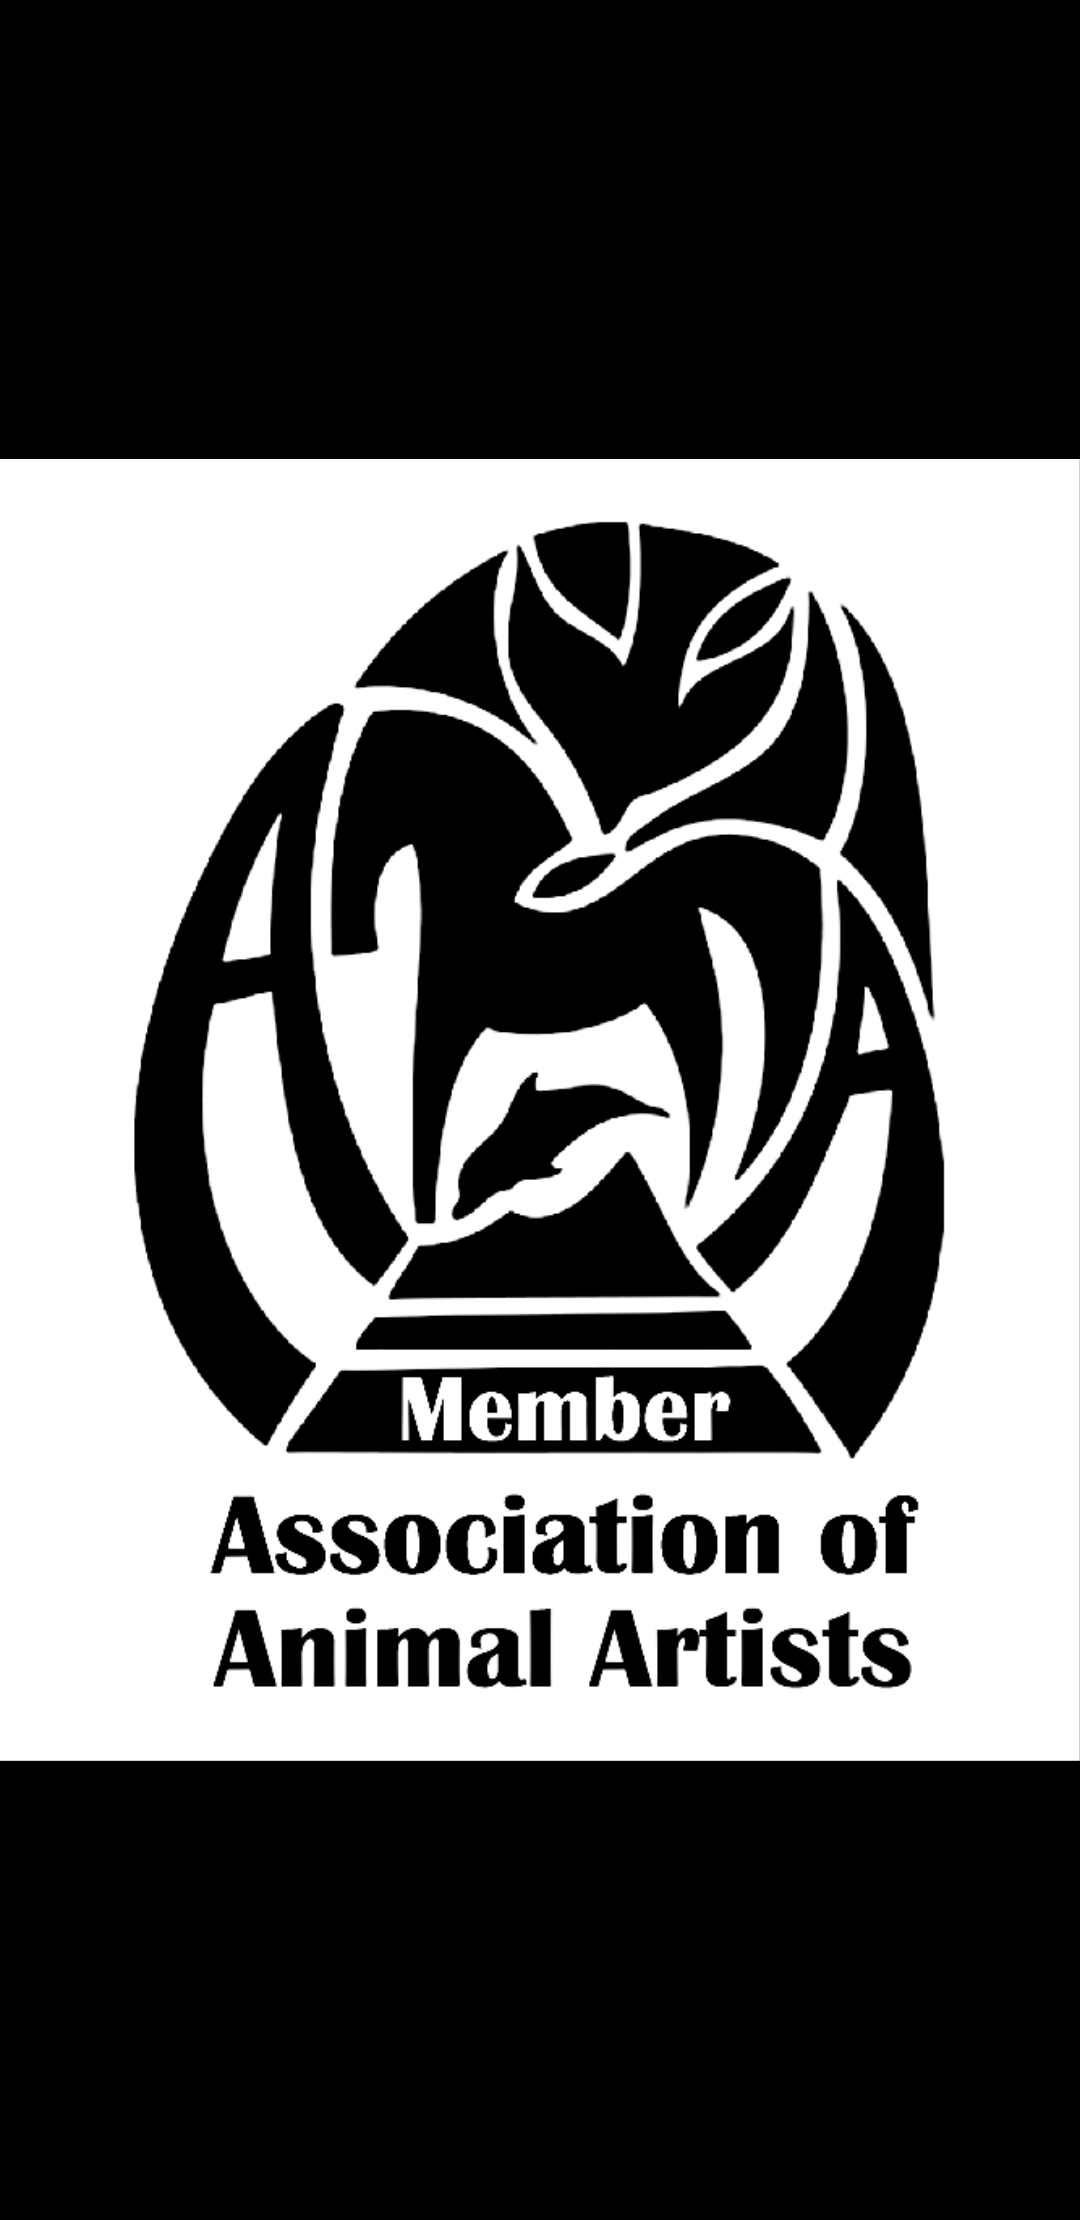 Association of Animal Artists